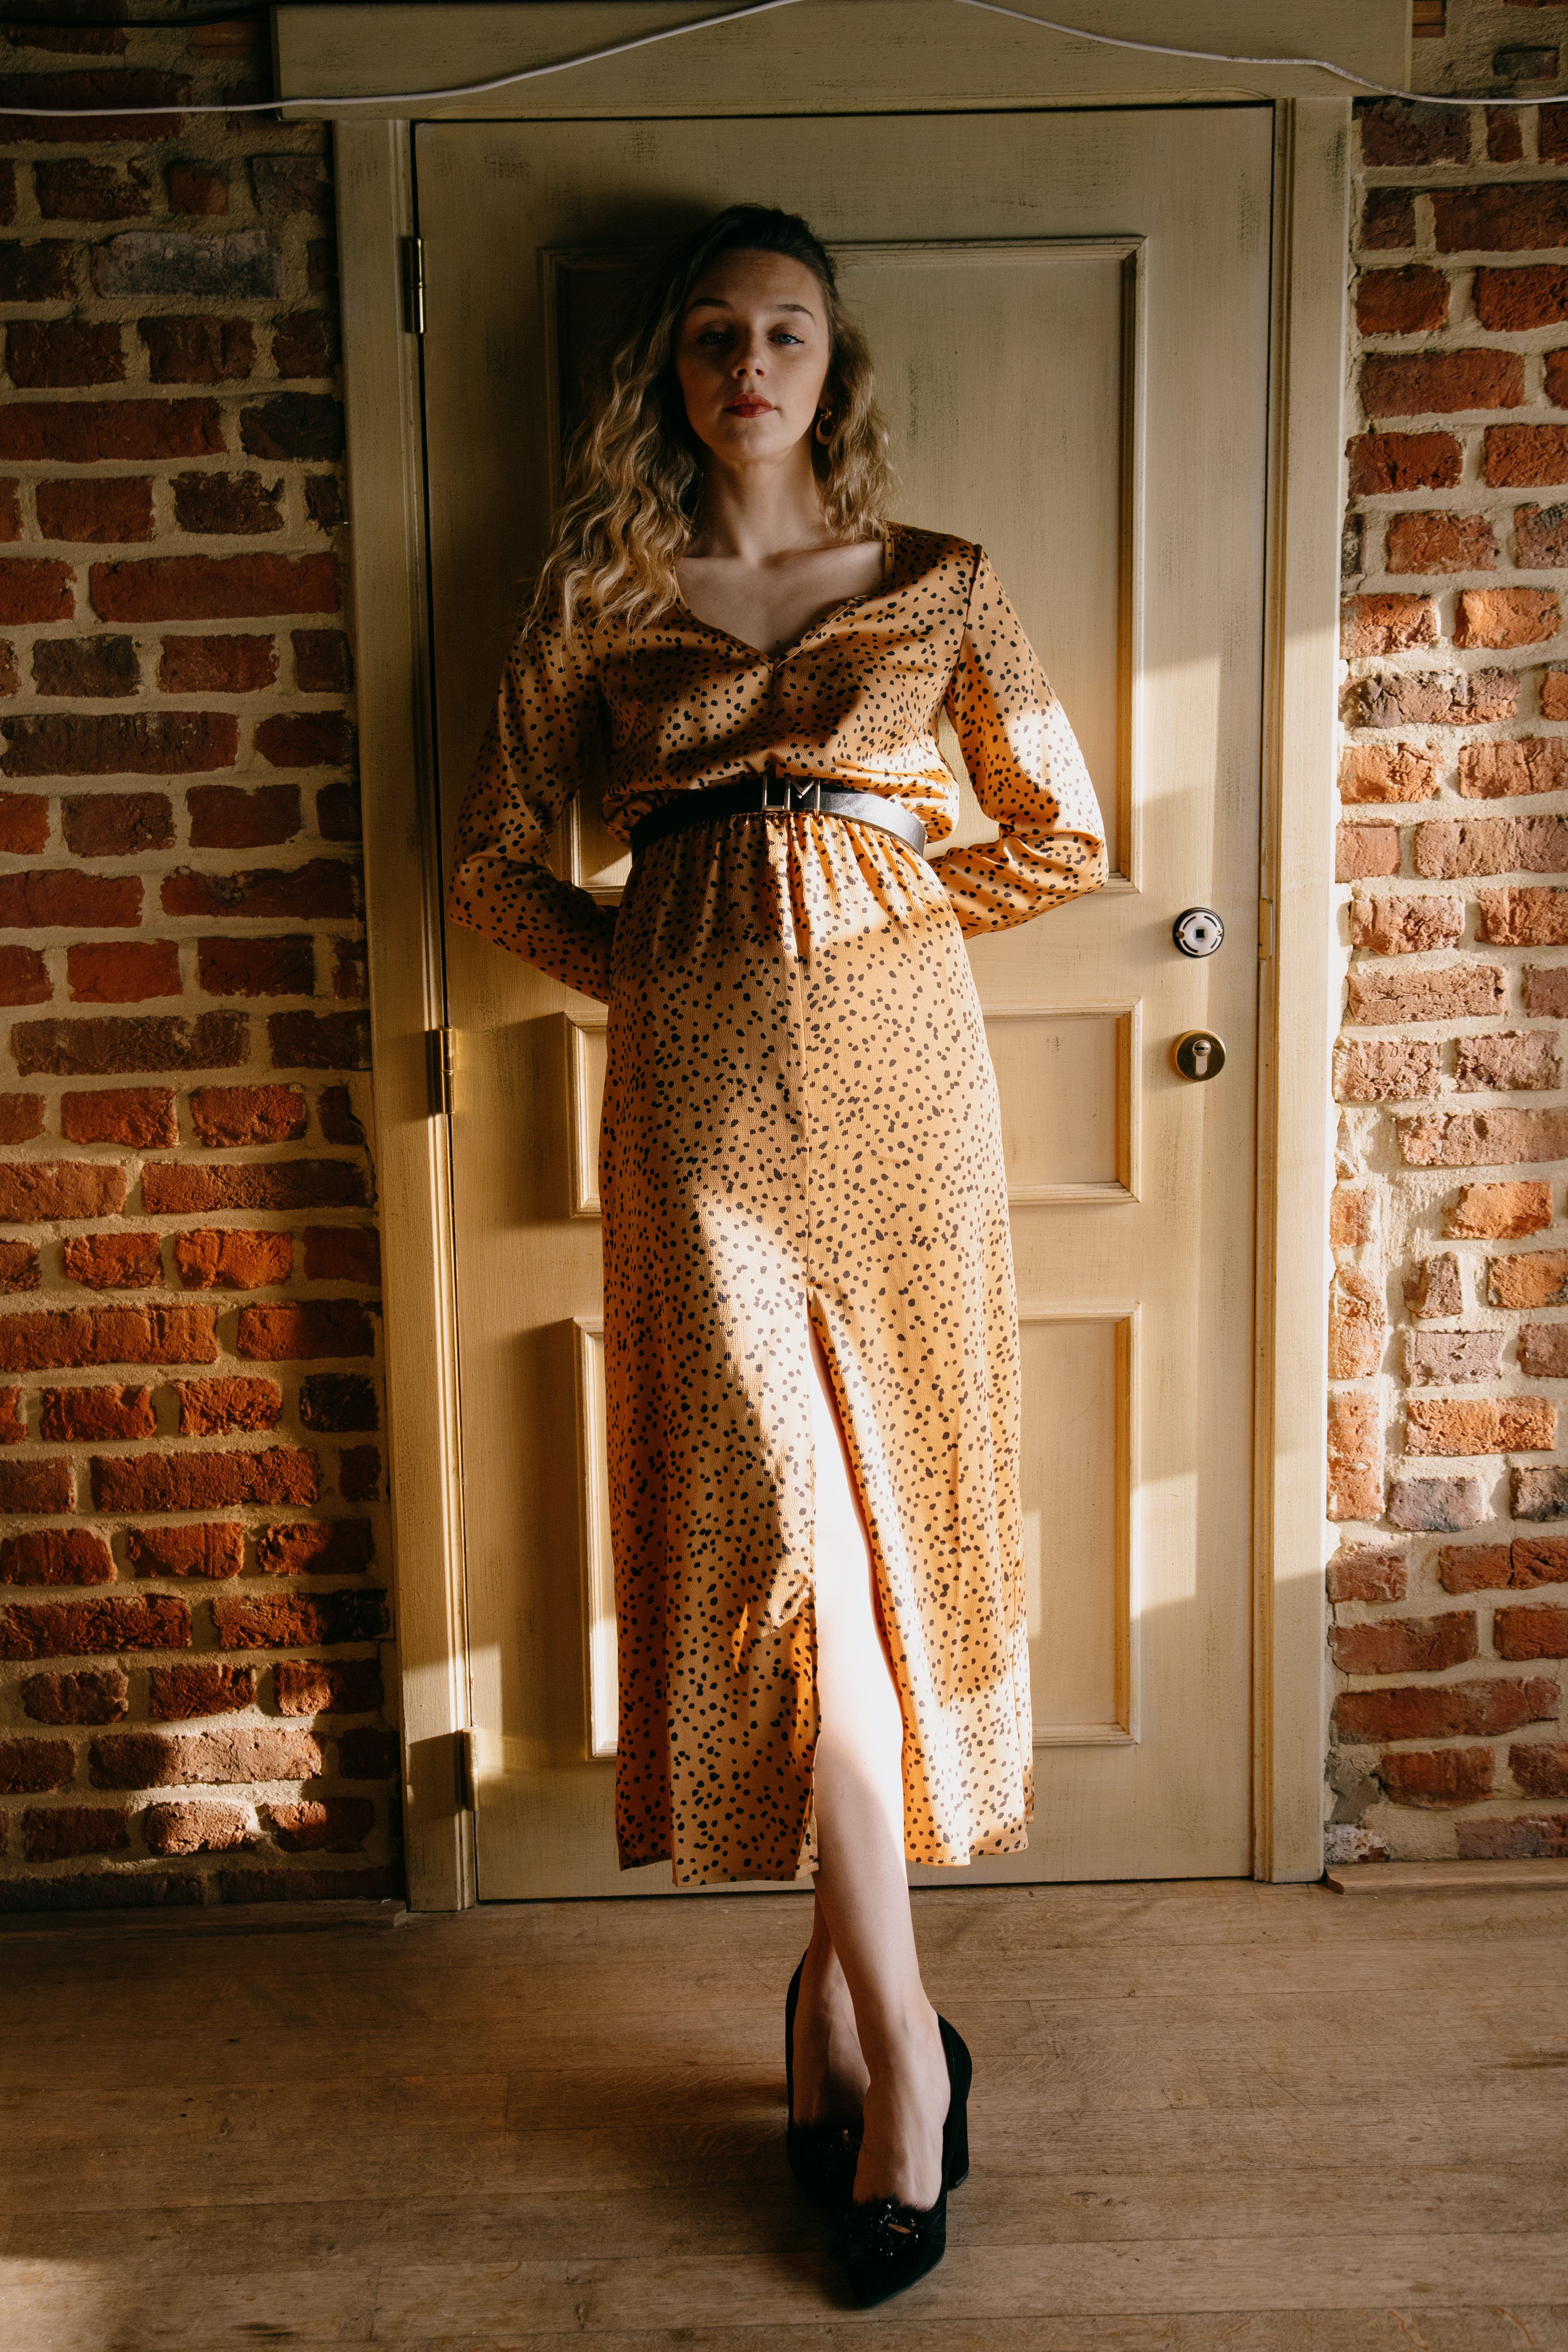 elegant dreamy woman in dress leaned on door at home